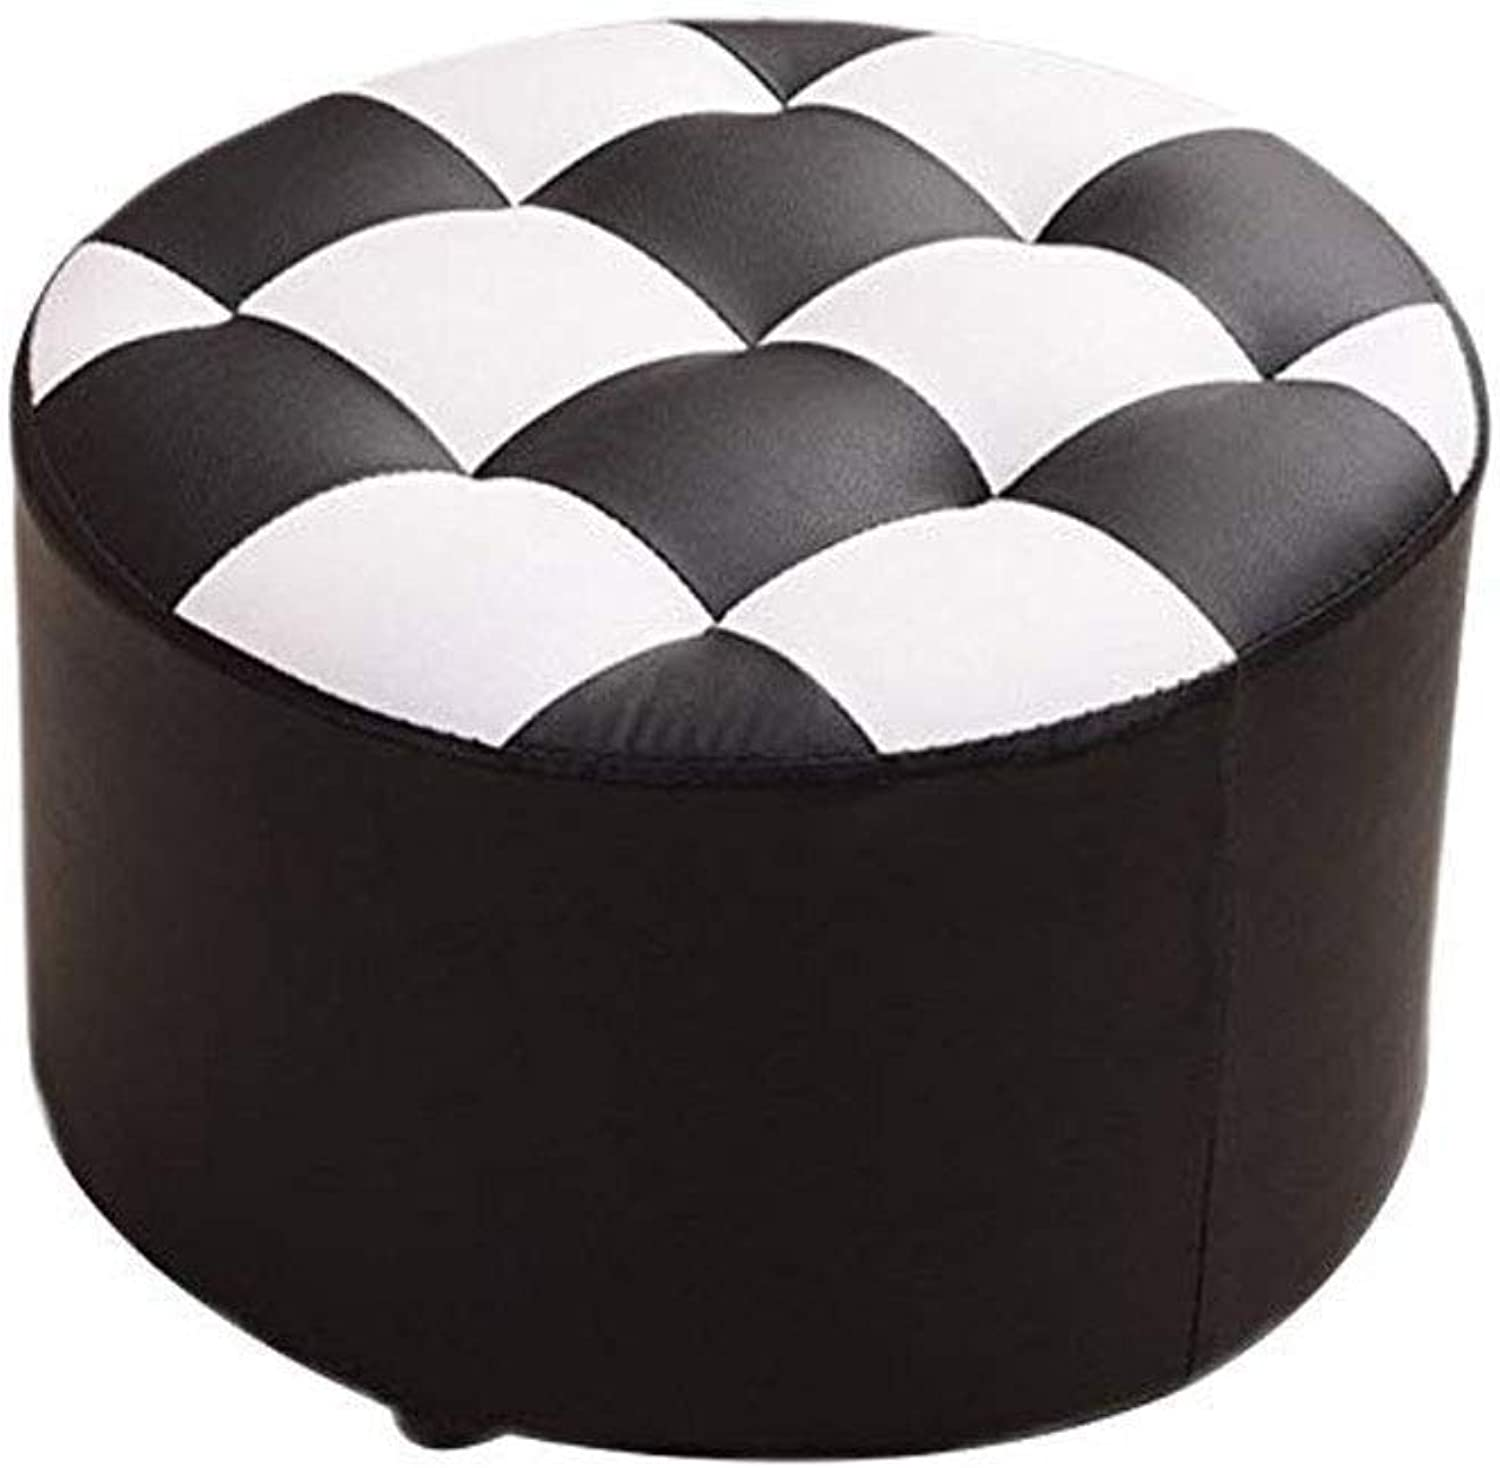 FS Footstool, Change shoes Bench Small Bench Round Short Coffee Table Stool Sofa Living Room Home Change shoes Bench 40×40×26cm (color   Black)